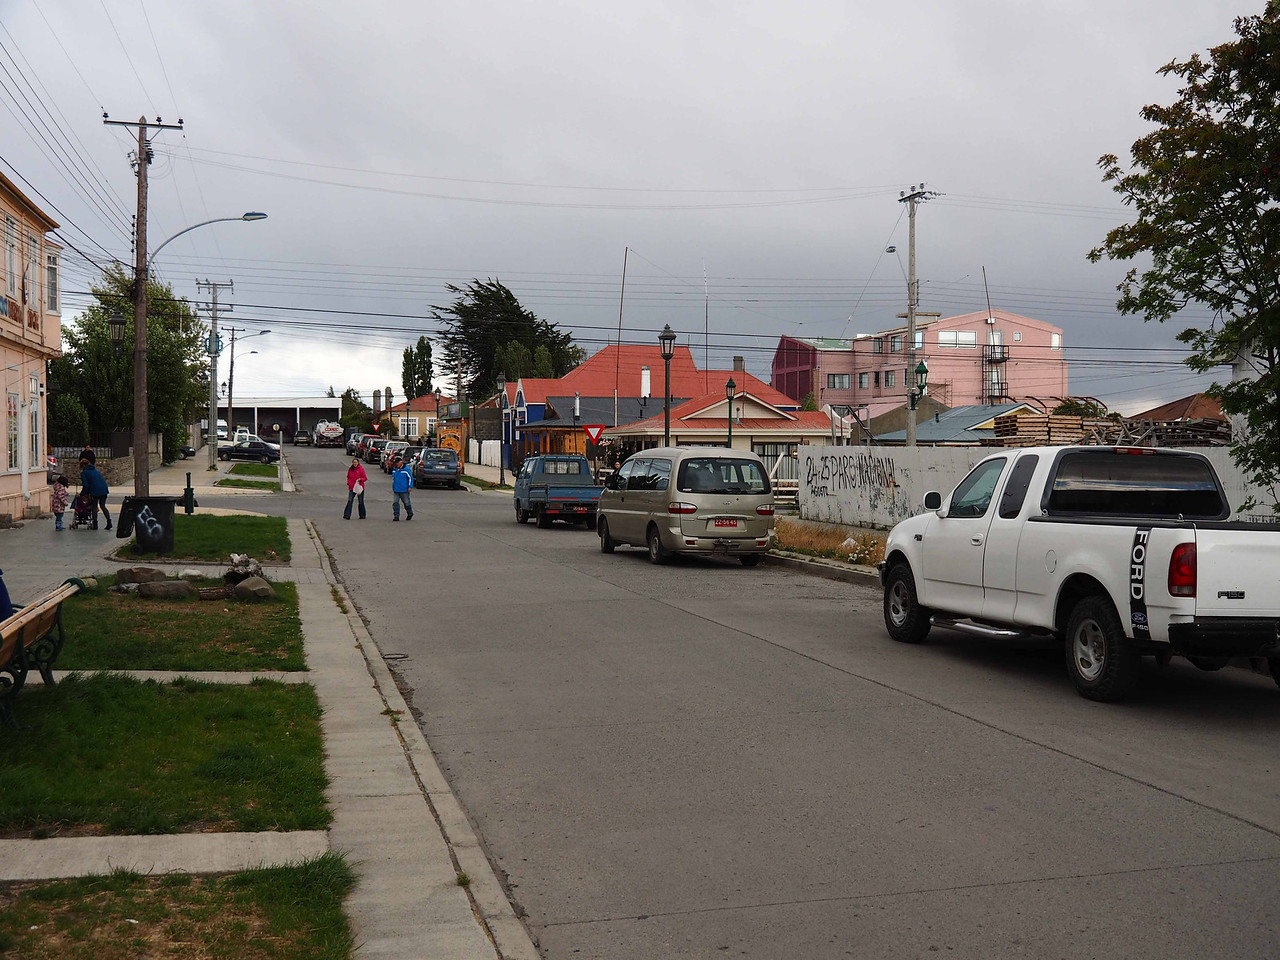 Puerto Natales. The last town before Torres del Paine, 100 miles away.